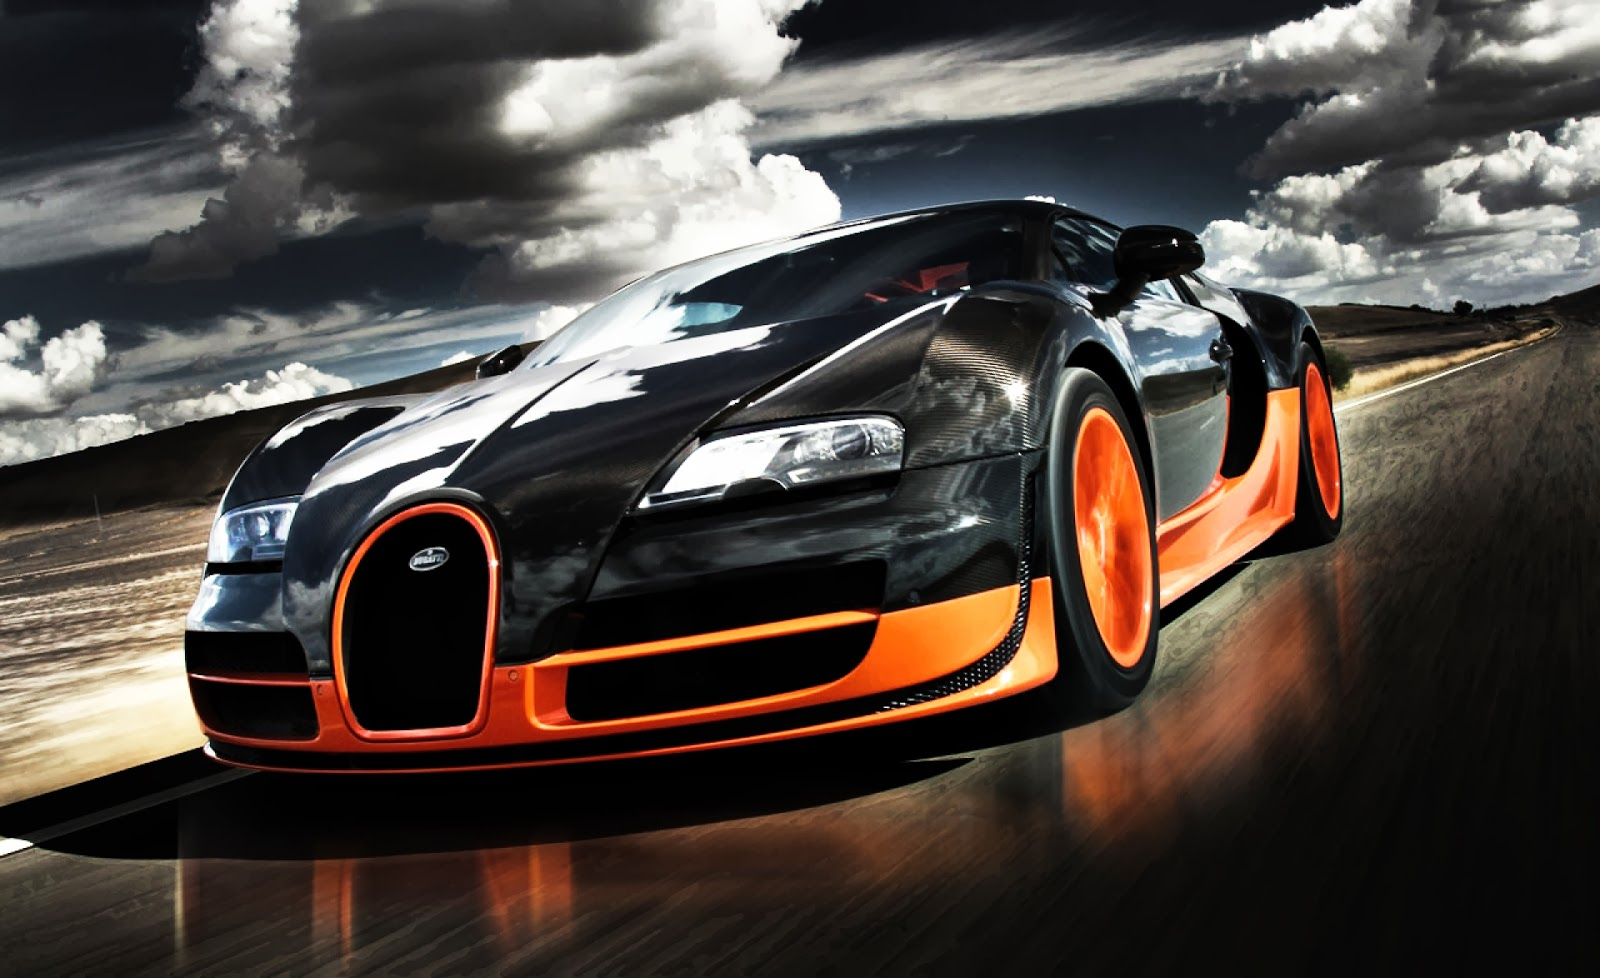 bugatti veyron 2014 hd wallpapers deep hd wallpapers for you hd wallpapers. Black Bedroom Furniture Sets. Home Design Ideas